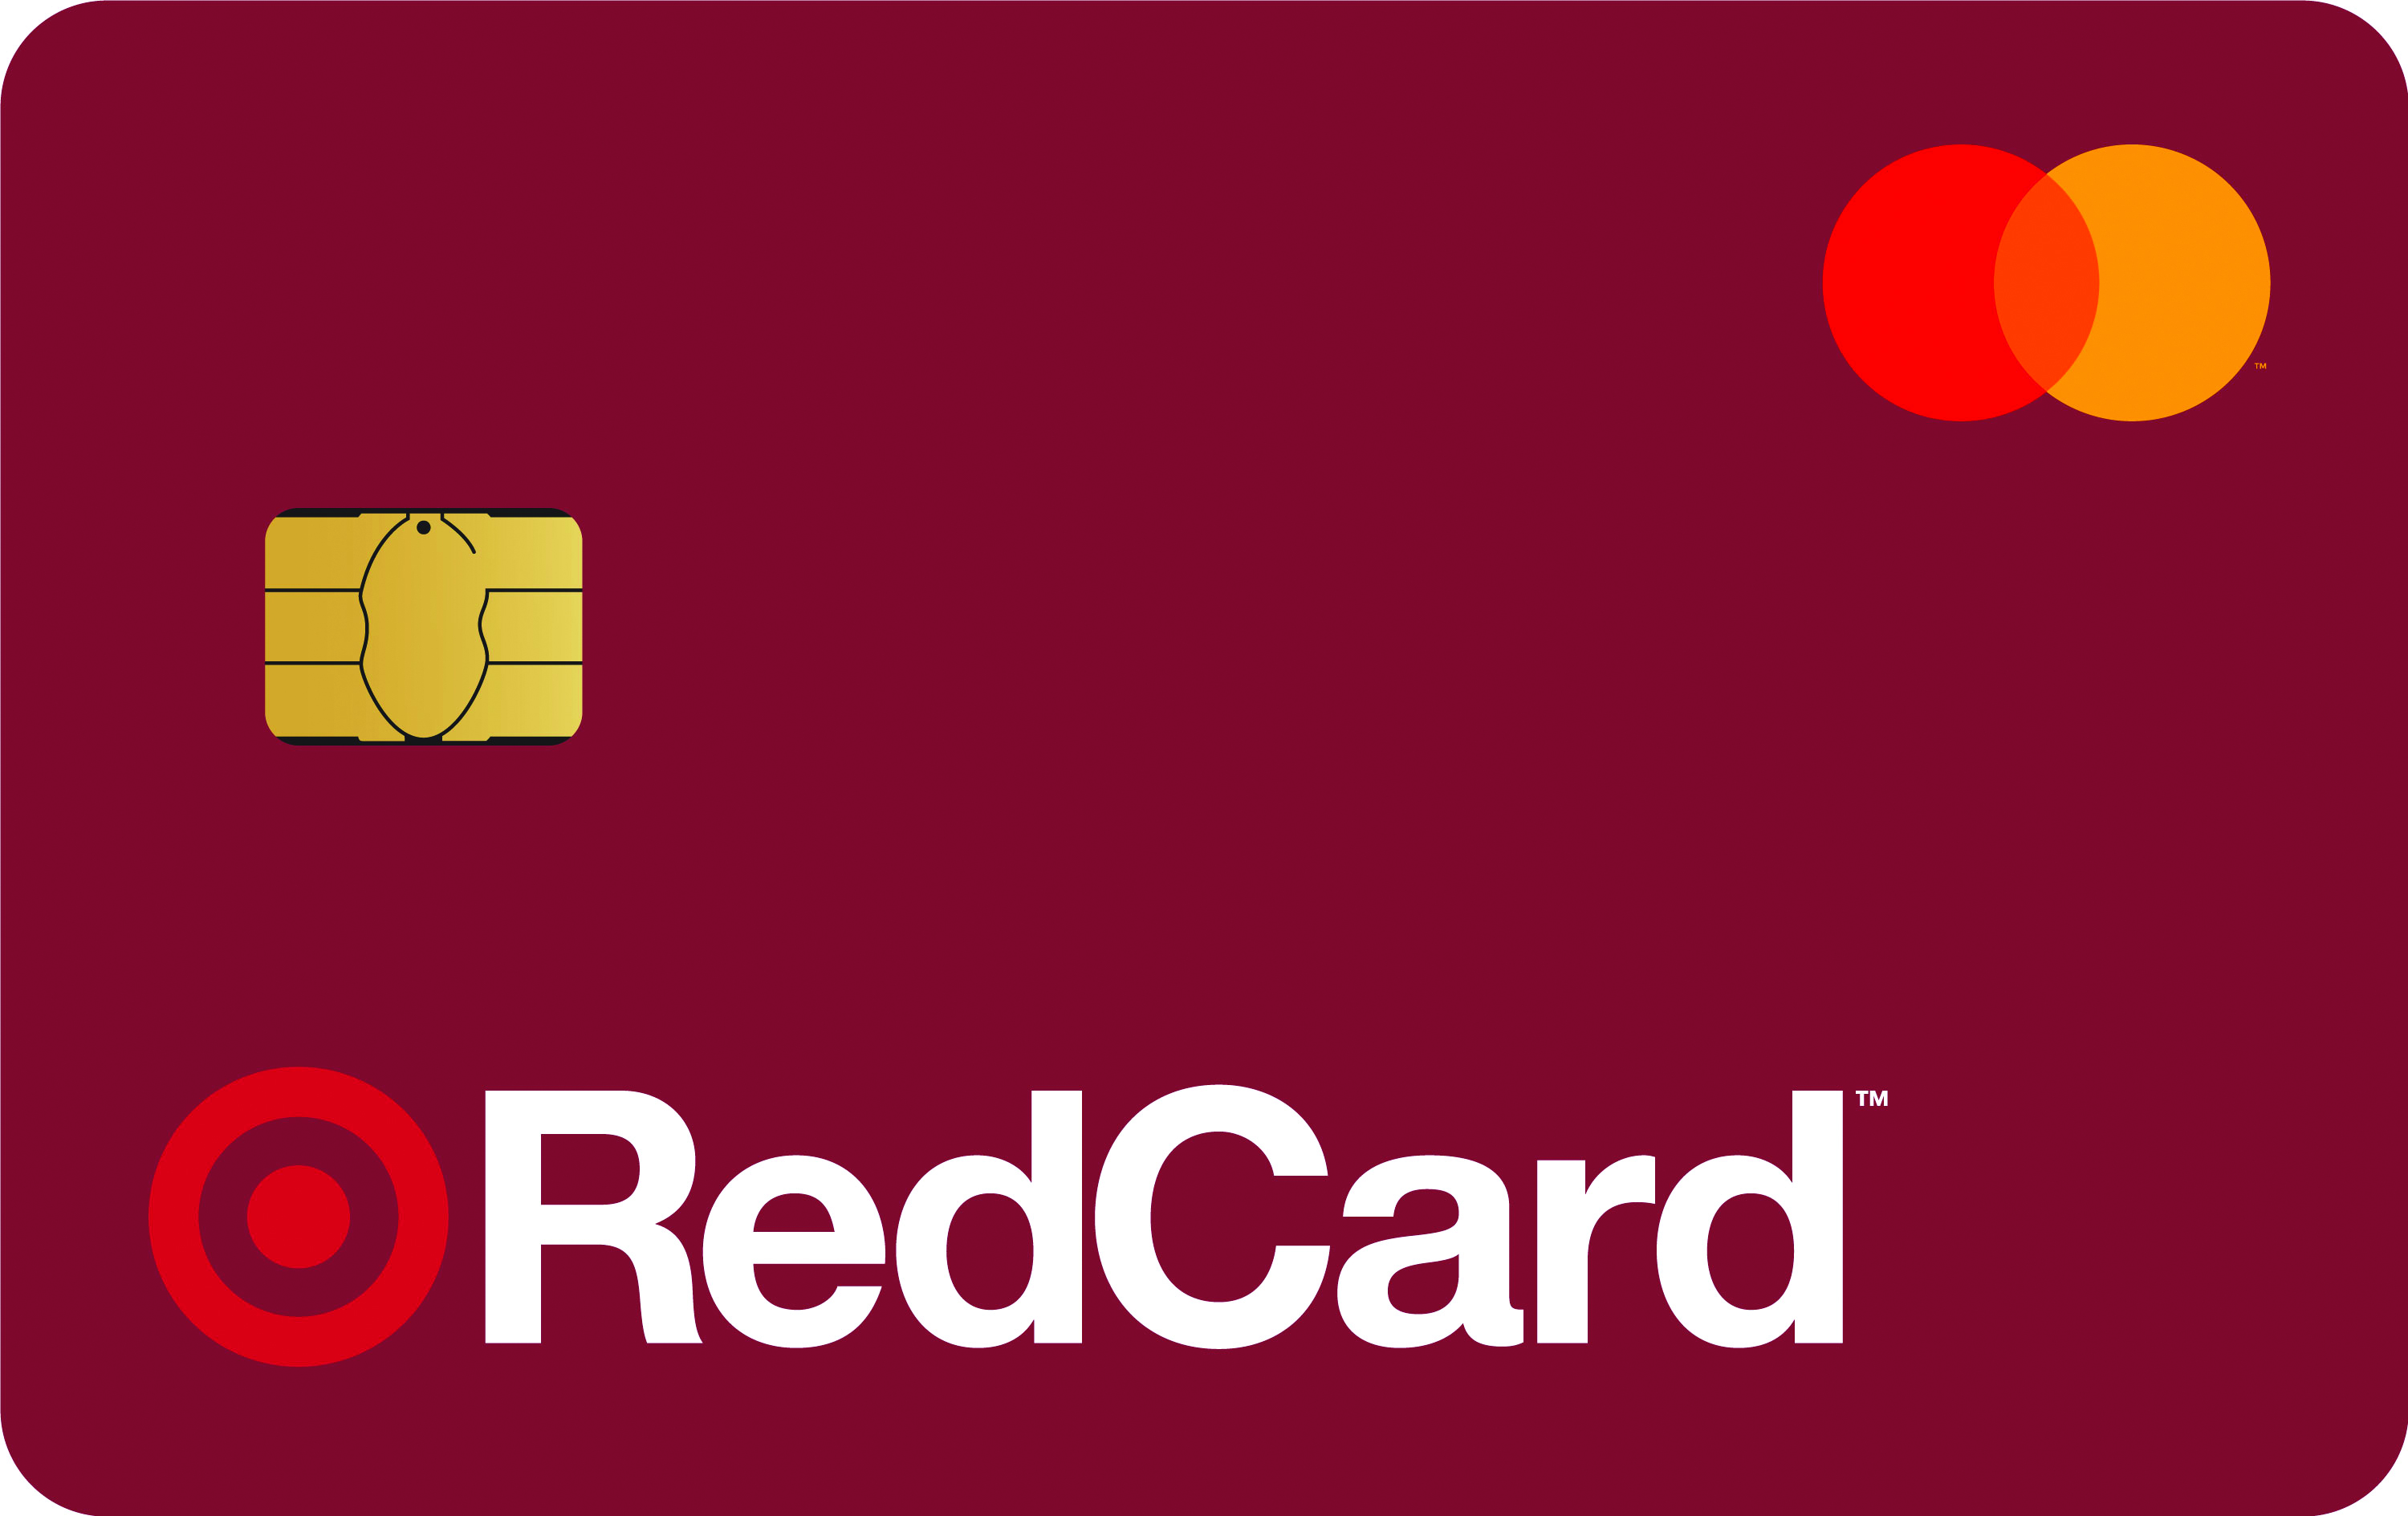 request RedCard credit account agreement